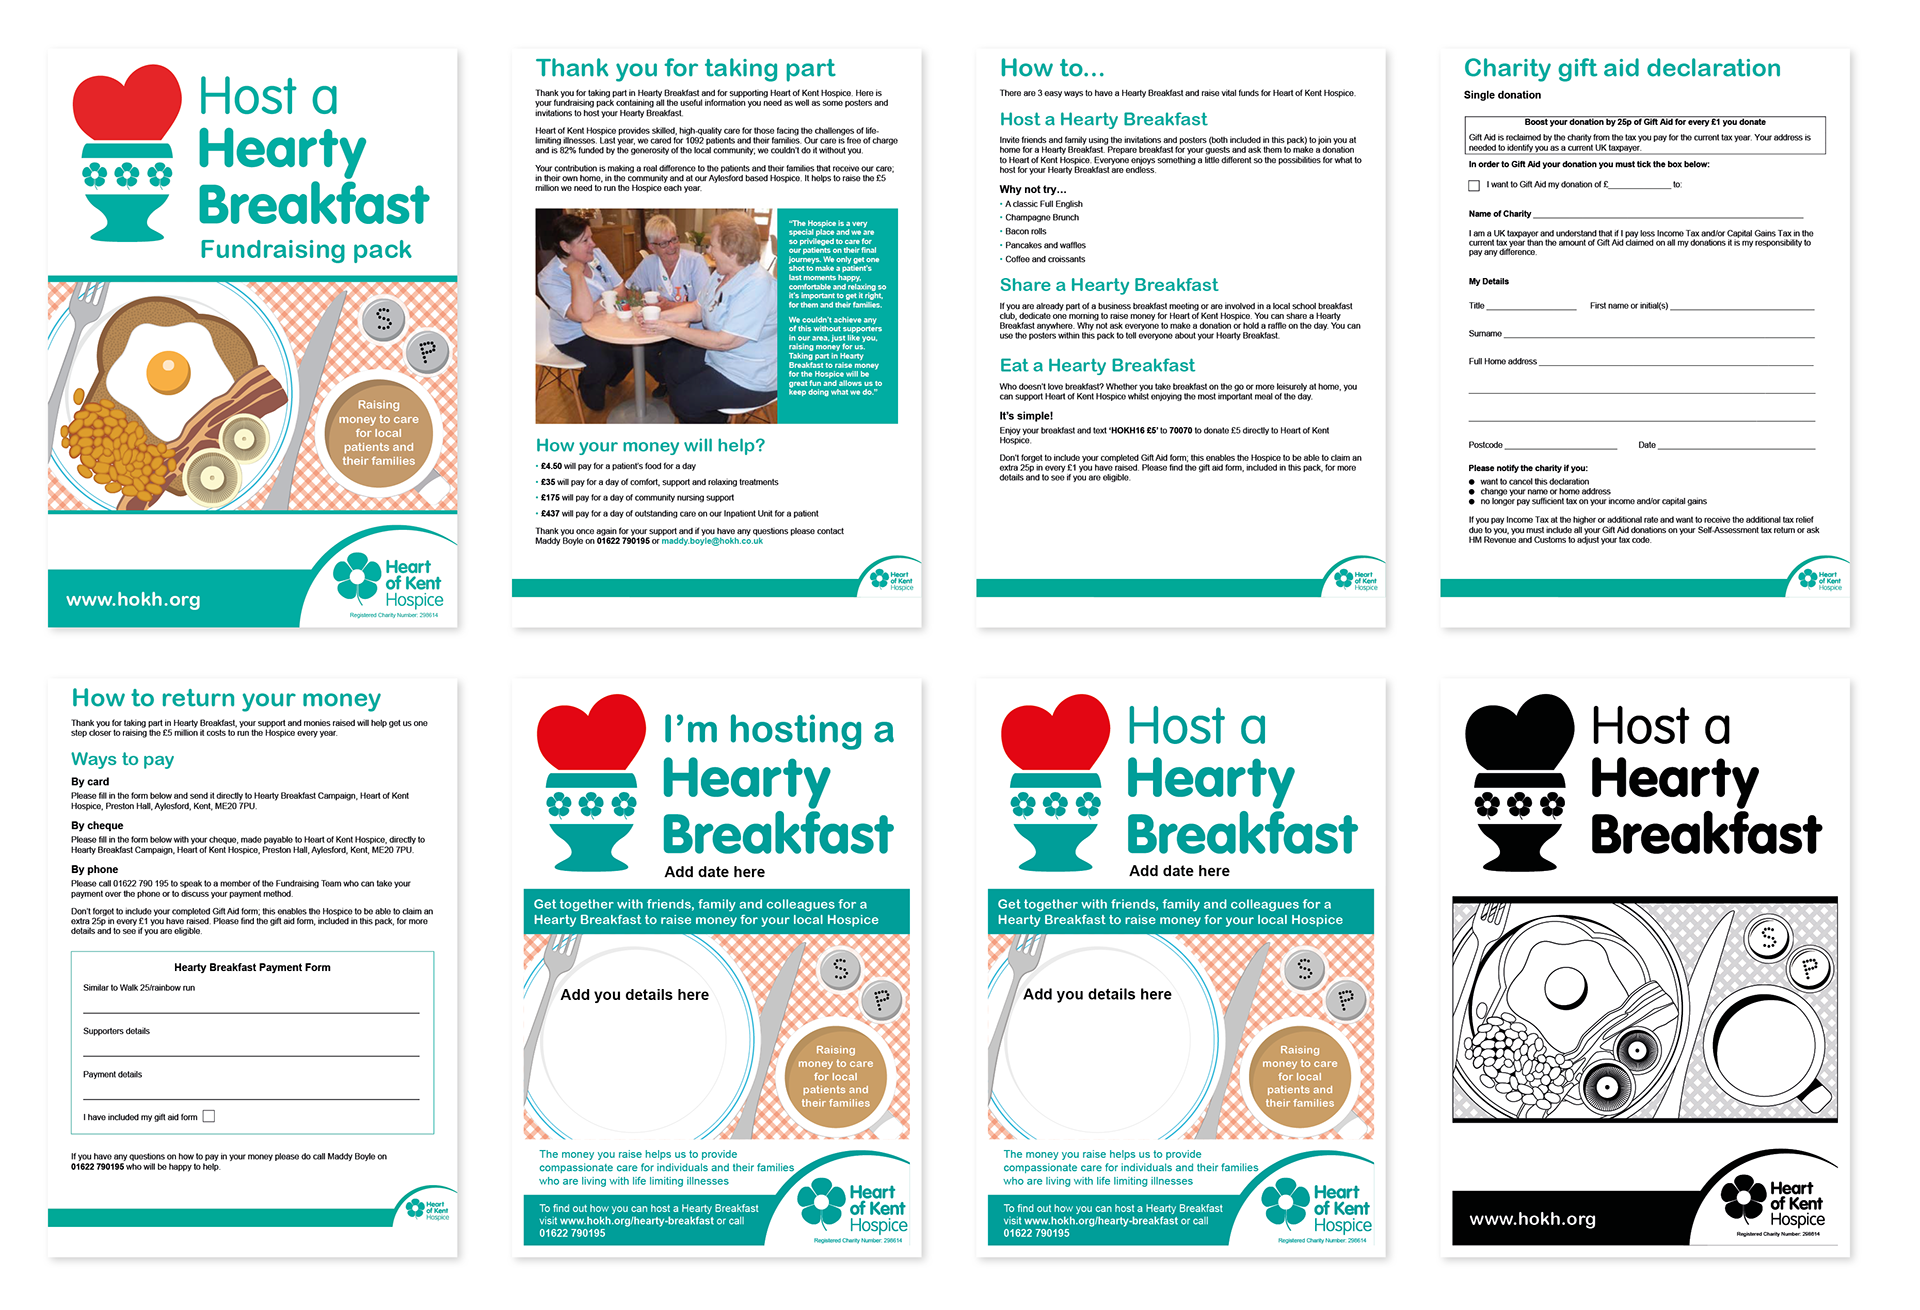 Neil cooper host a hearty breakfast heart of kent hospice the pack consisted of an introduction to the cause and guidance on how to host a hearty breakfast gift aid declaration and how to return money raised negle Image collections